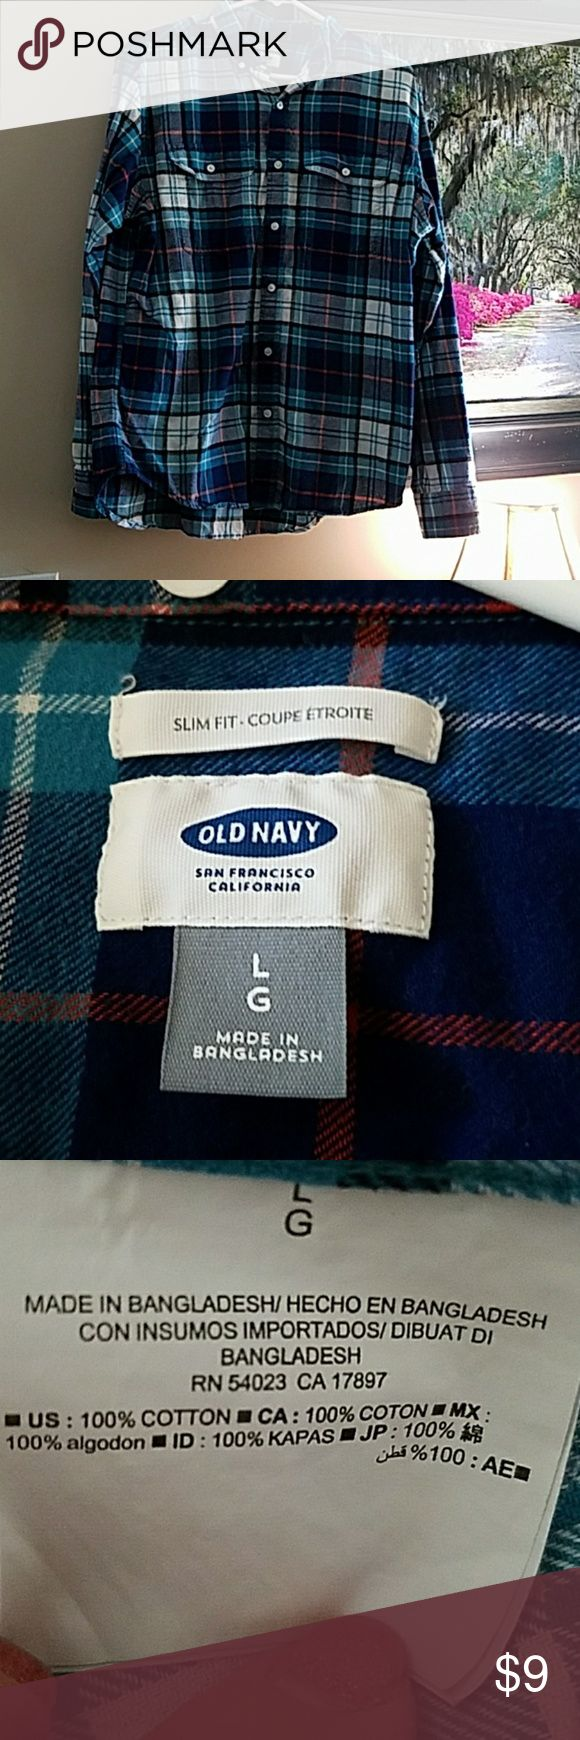 Old Navy longsleeve Men's plaid shirt! Like new! Men's longsleeve plaid shirt in good condition,  like new! Size large and from Old Navy! Old Navy Shirts Casual Button Down Shirts